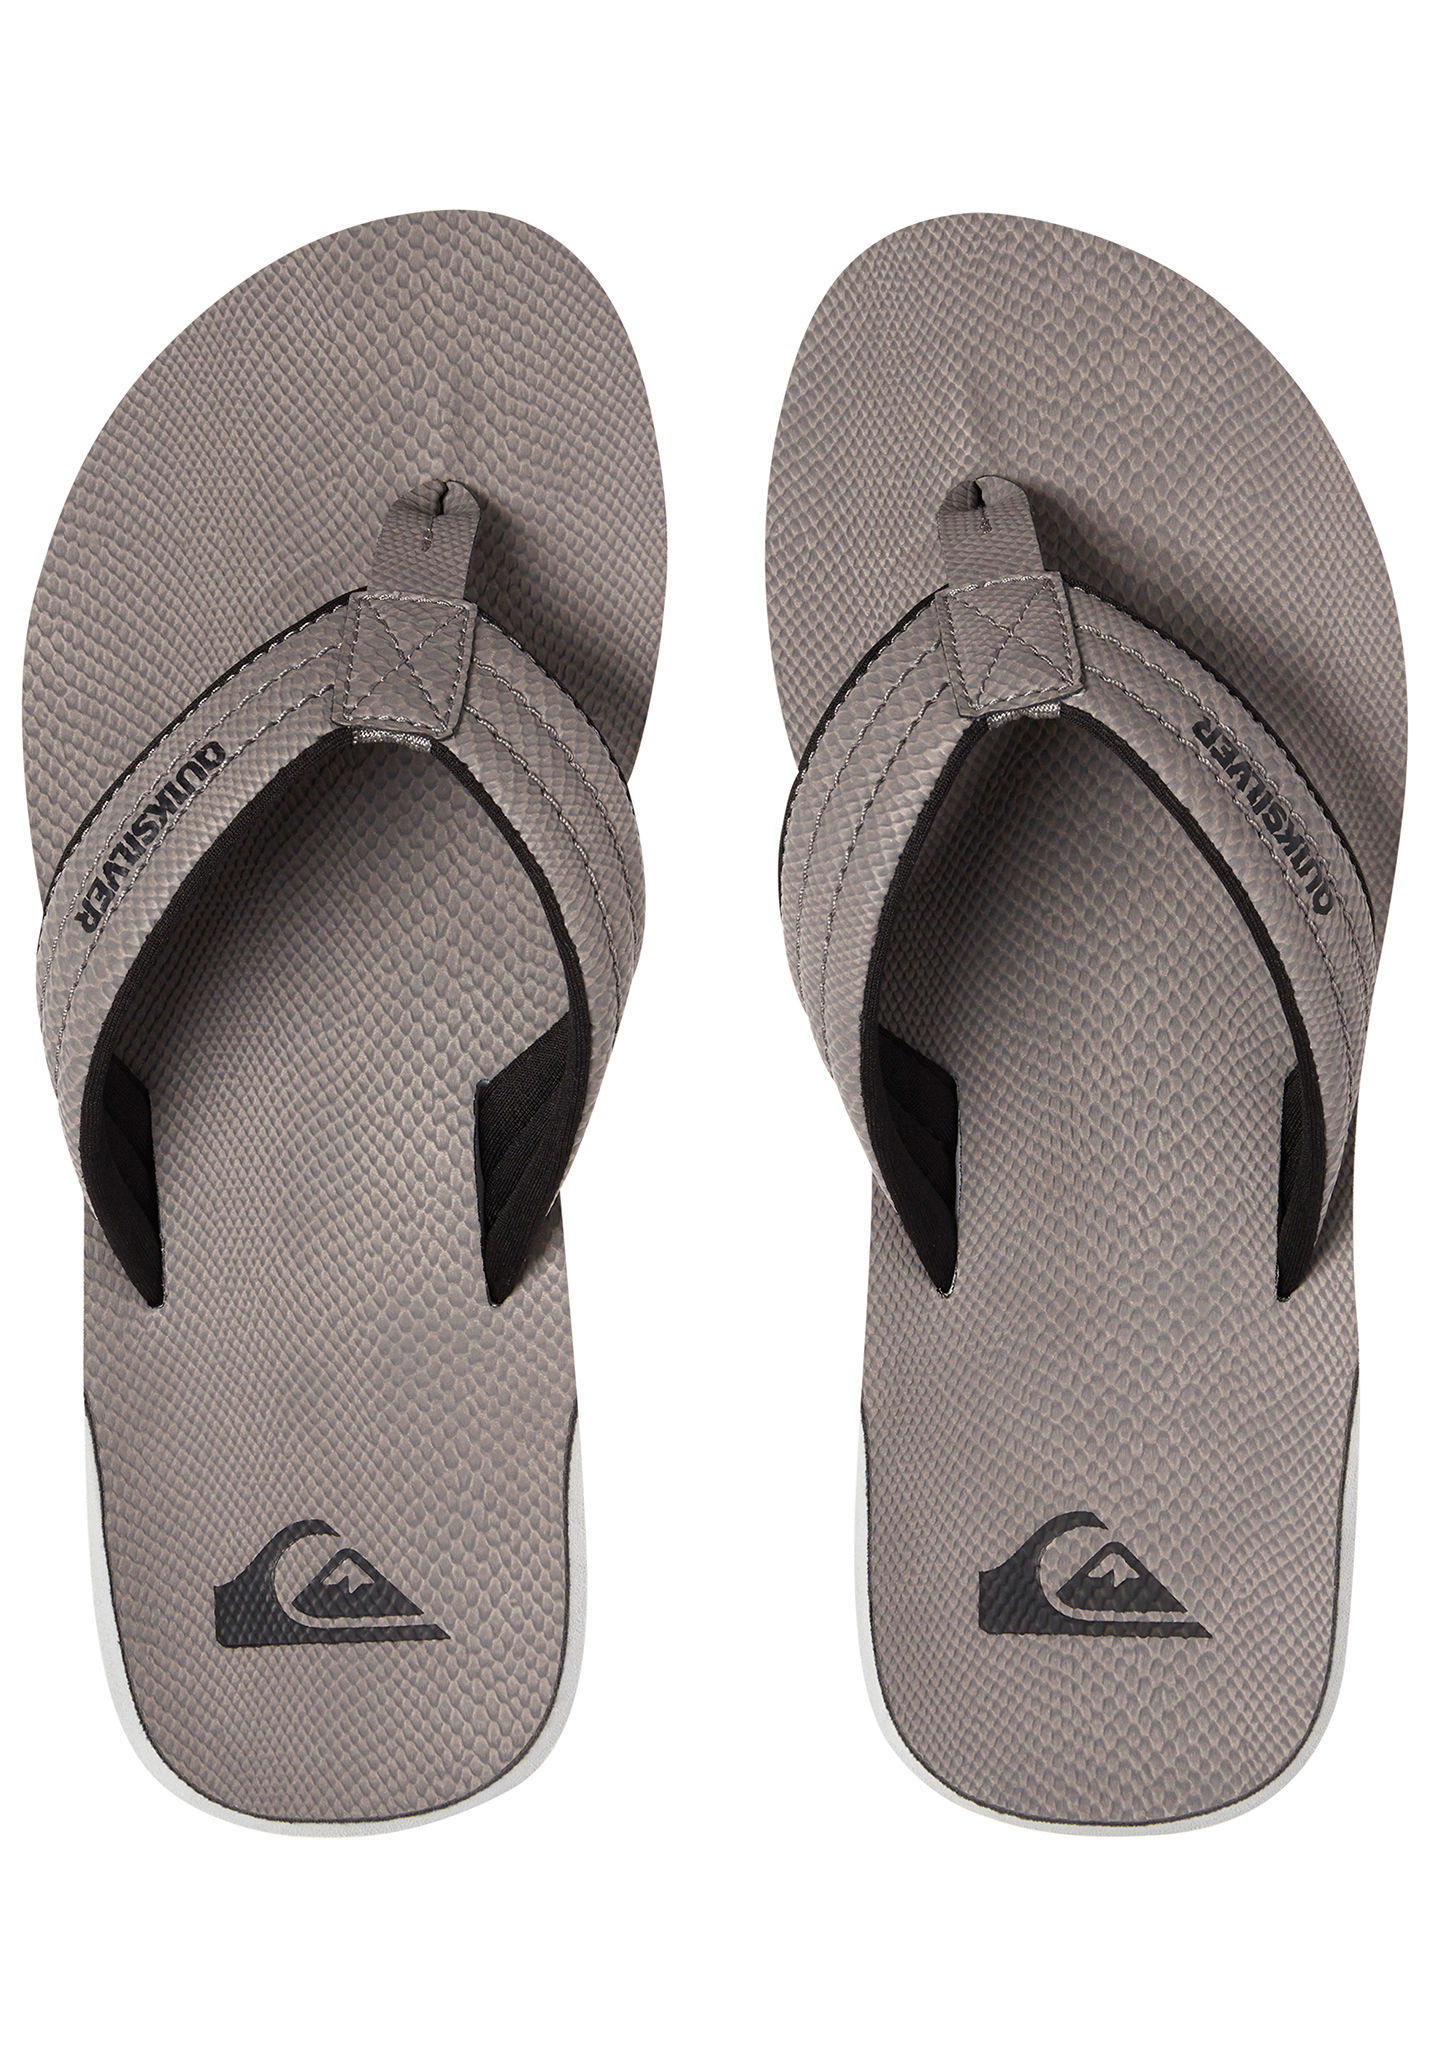 74a5664038 Quiksilver Carver Nubuck - Sandals for Men - Grey